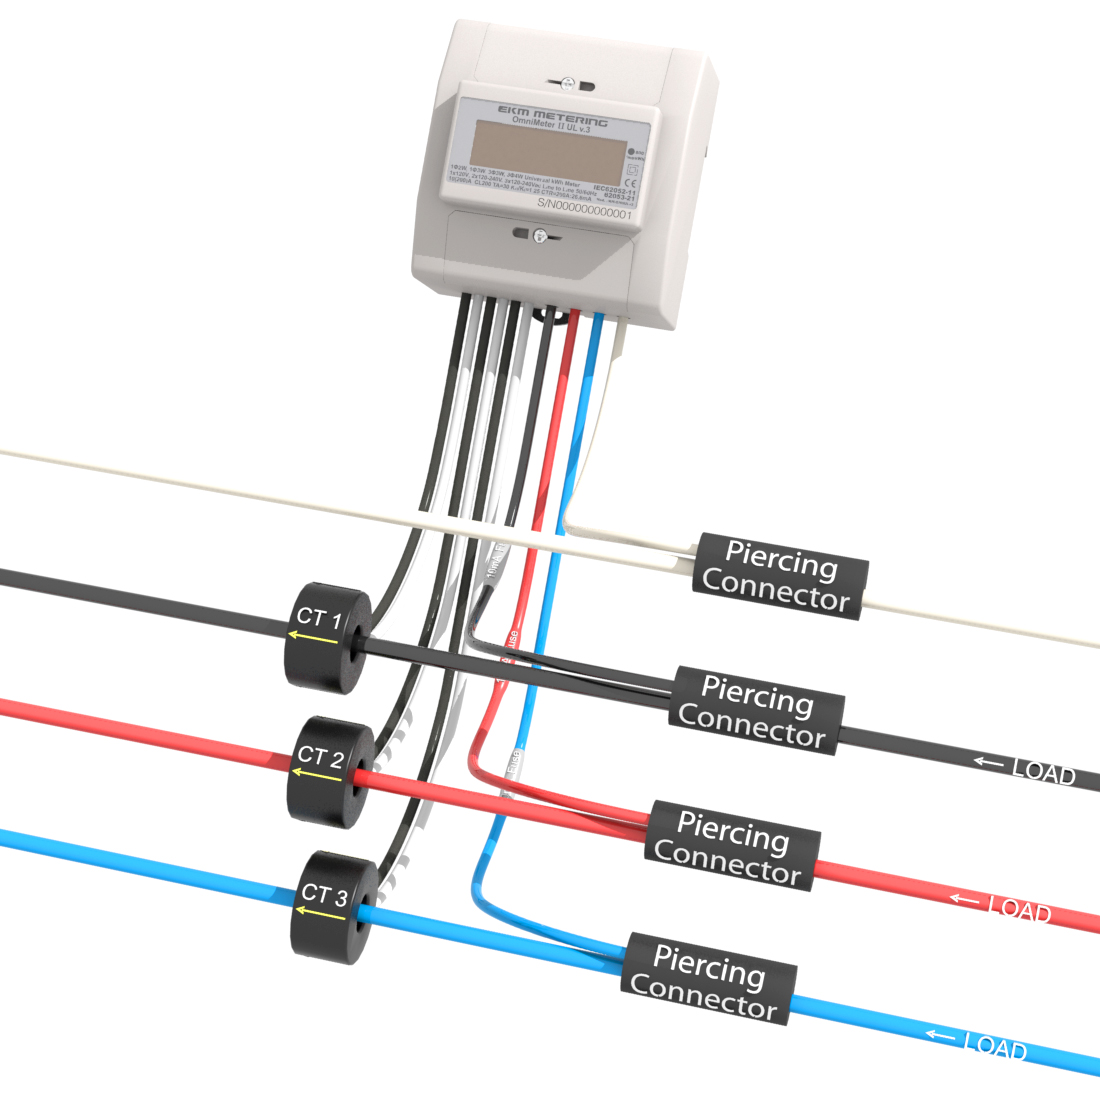 hight resolution of 3 phase 4 wire metering up to 480v ekm support desk 480v 3 phase wiring diagram 480v 3 phase wiring